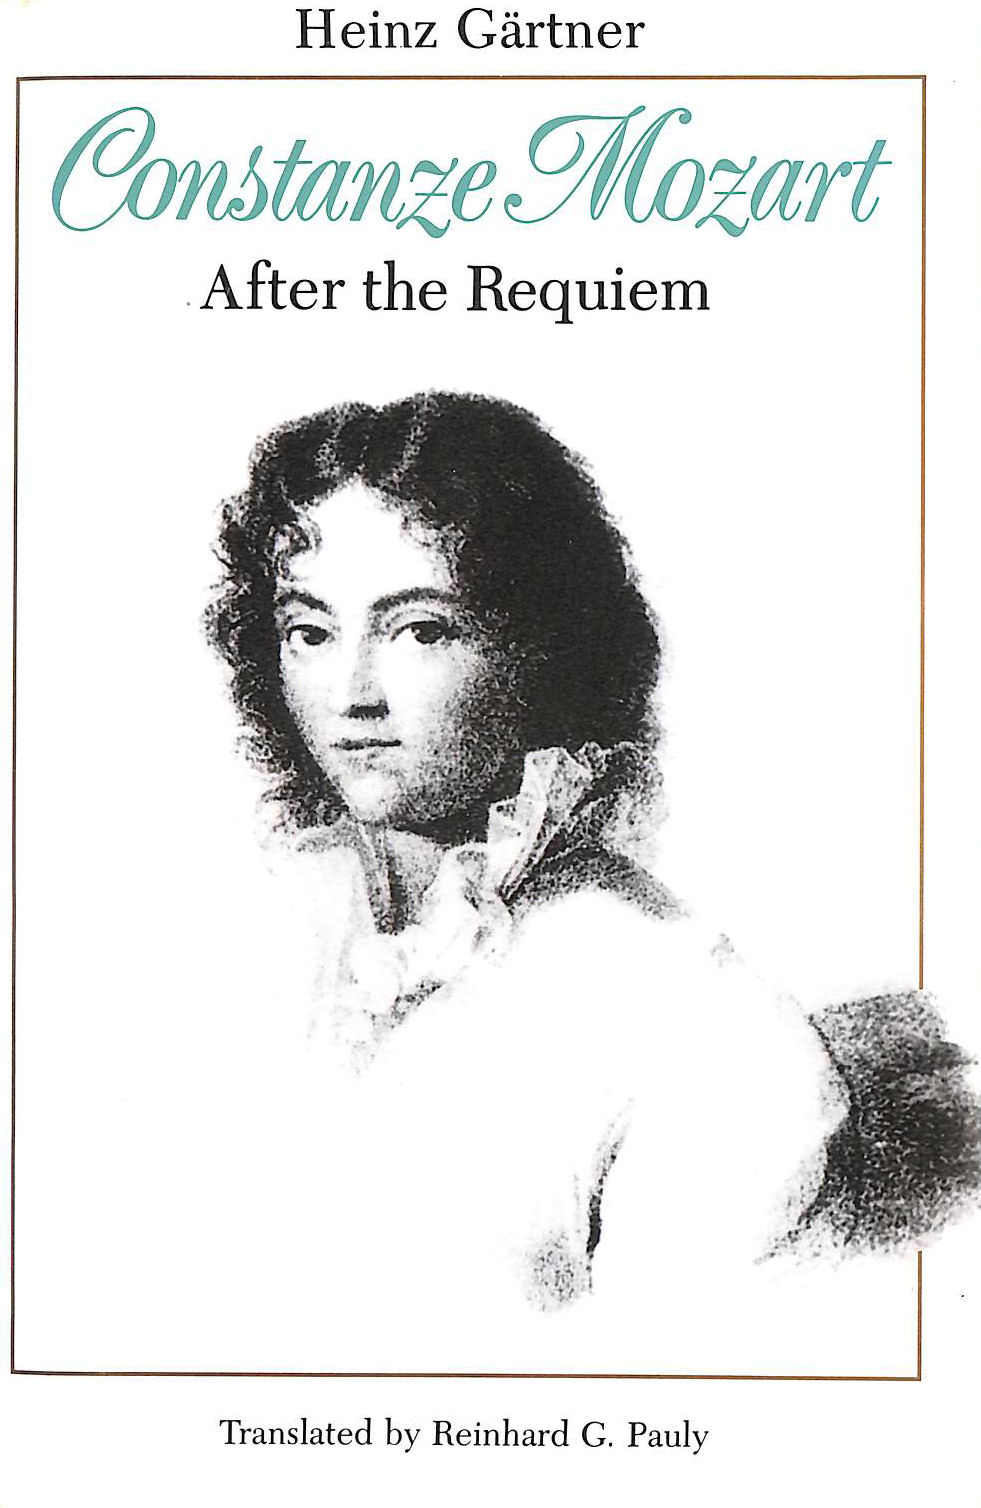 Image for Constanze Mozart: After the Requiem